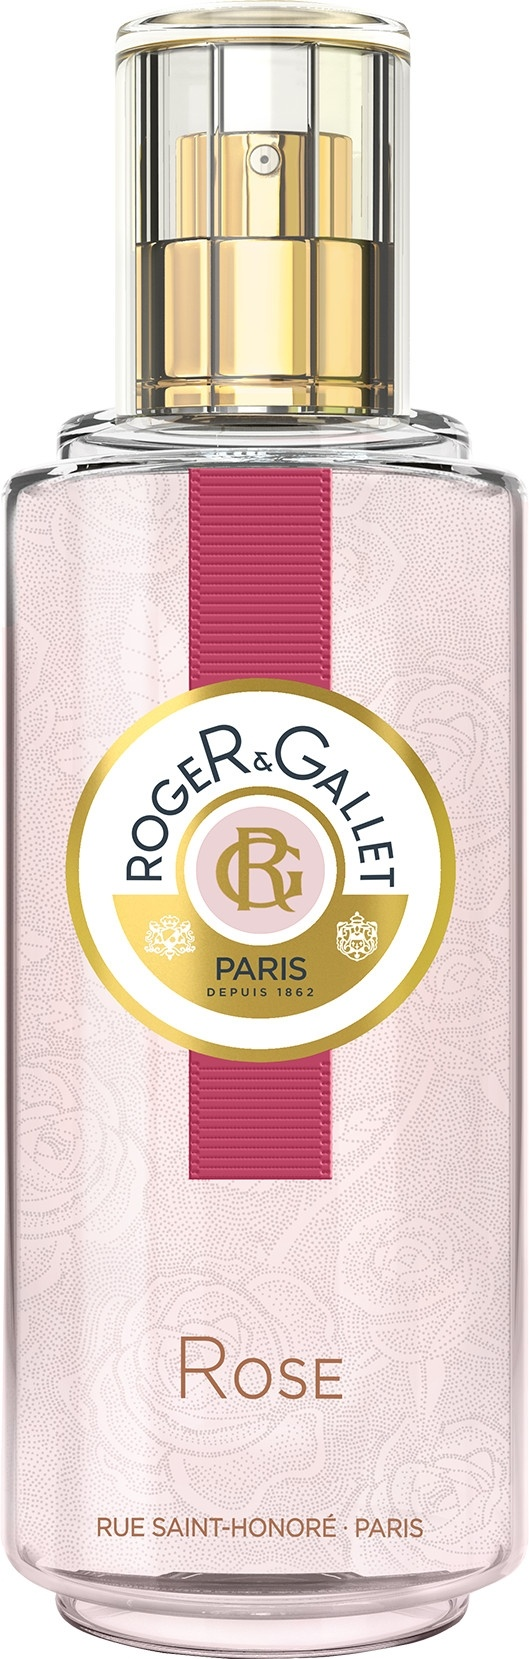 Roger & Gallet Rose Fragrant Water Spray 100ml